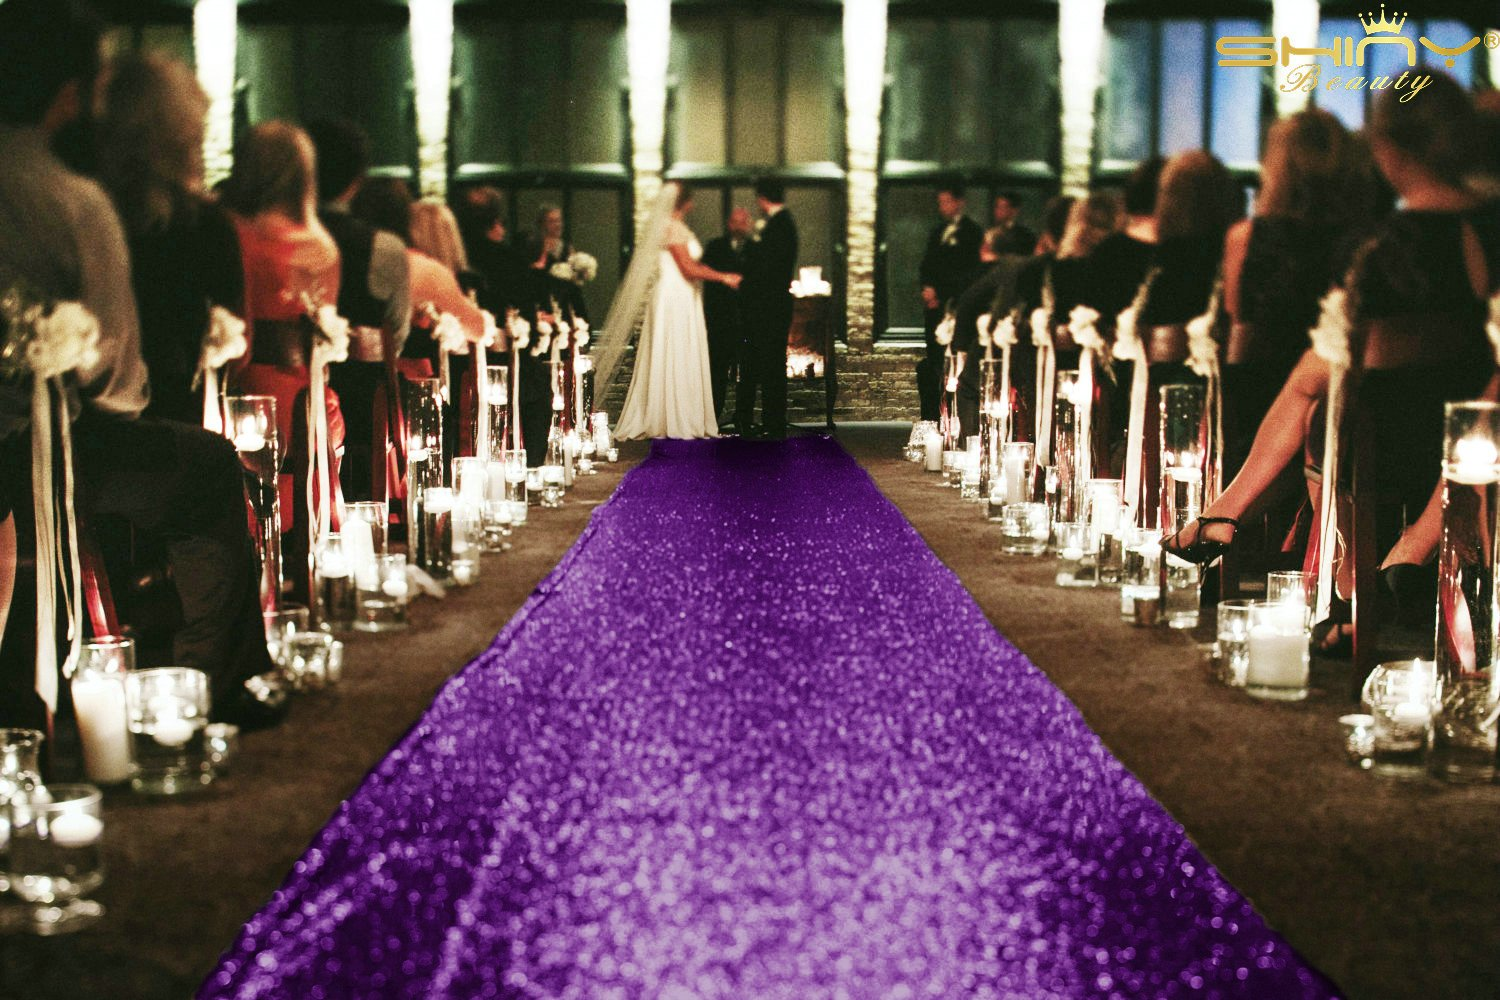 ShinyBeauty 20FTX4FT-Aisle Runner-Purple,Wedding Accessories Carpet Aisle Runner,Slip Hallway Stair Runner Rug For Thanksgiving (Purple)